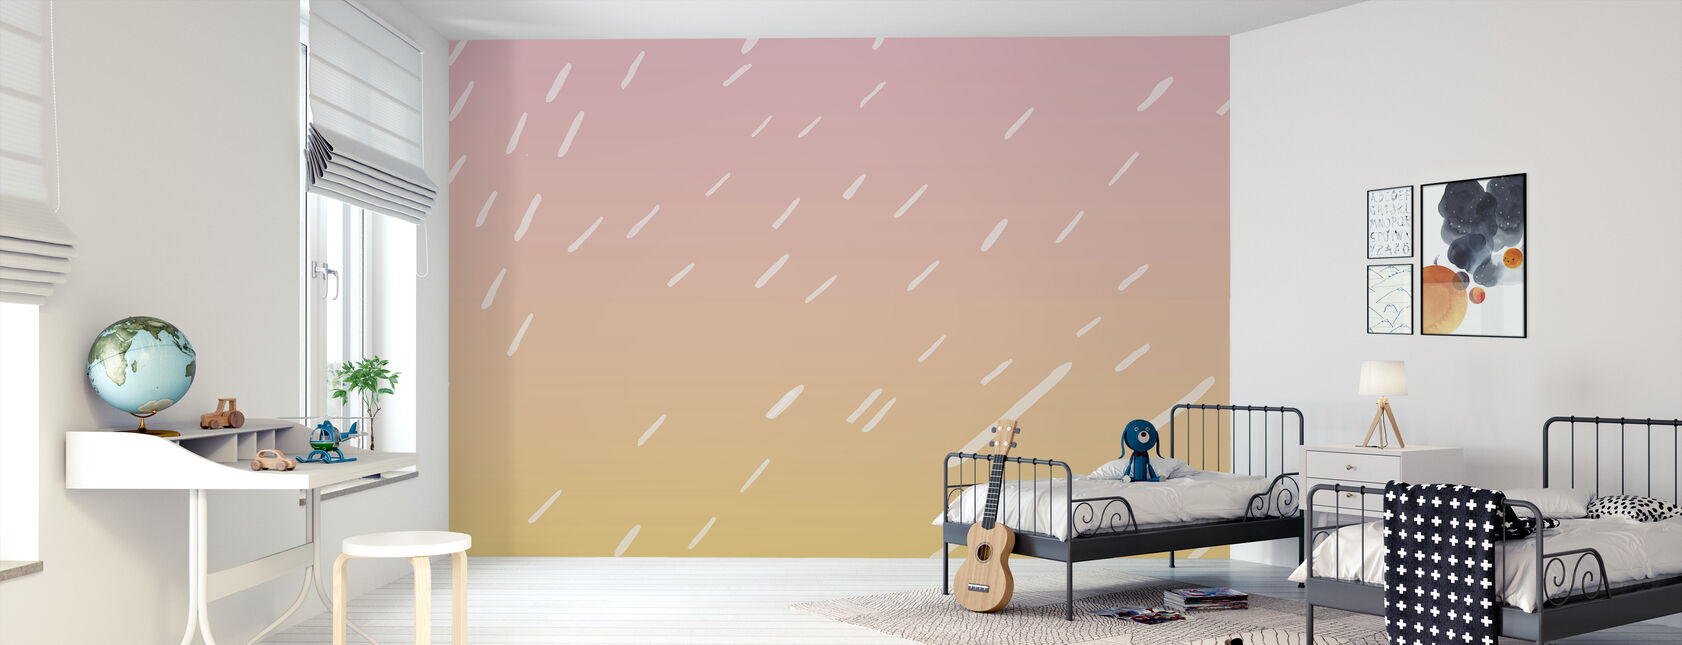 Summer Rain - Wallpaper - Kids Room